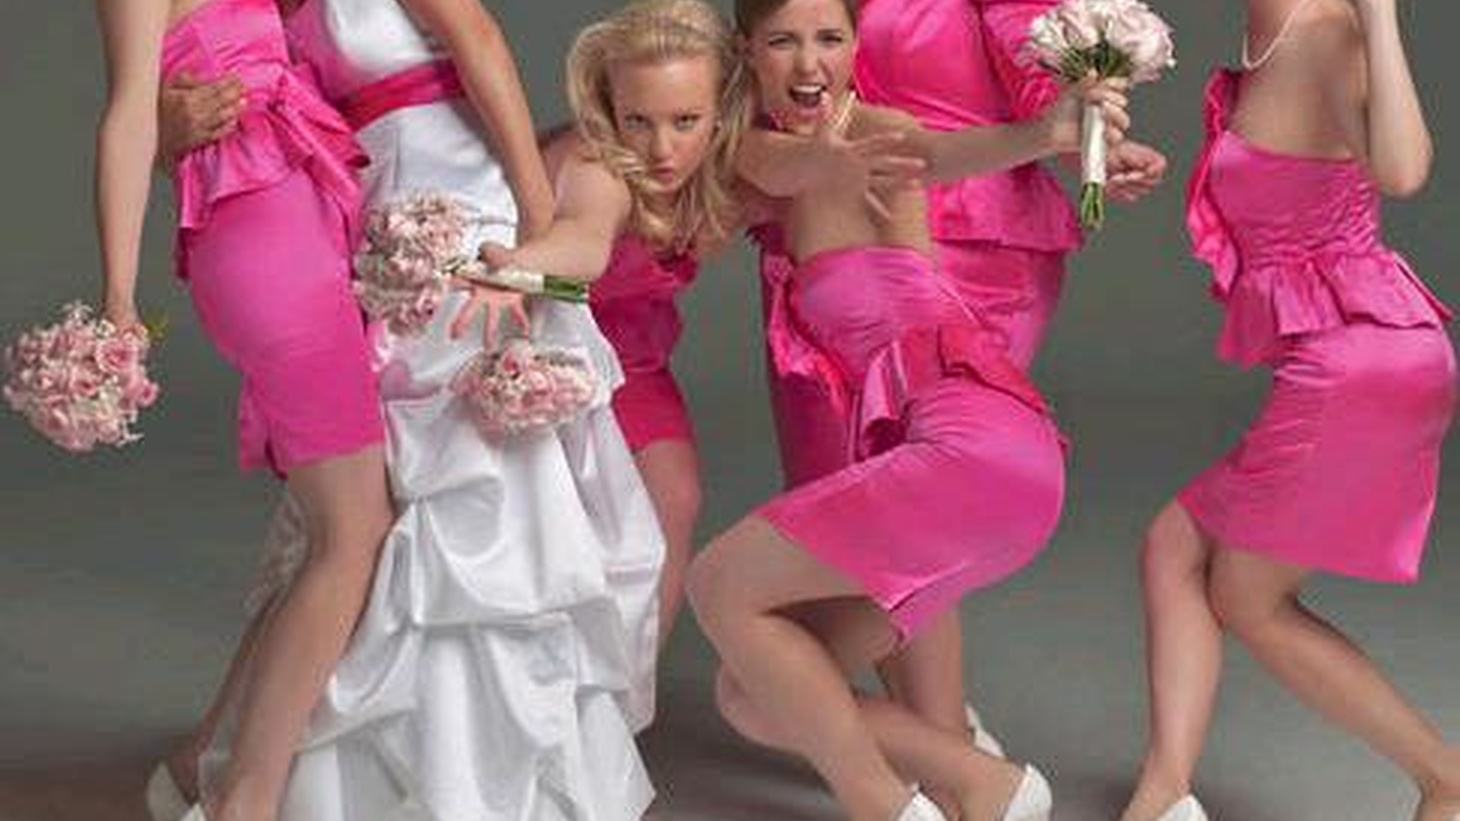 If Bridesmaids is only a chick flick, then call me a chick...